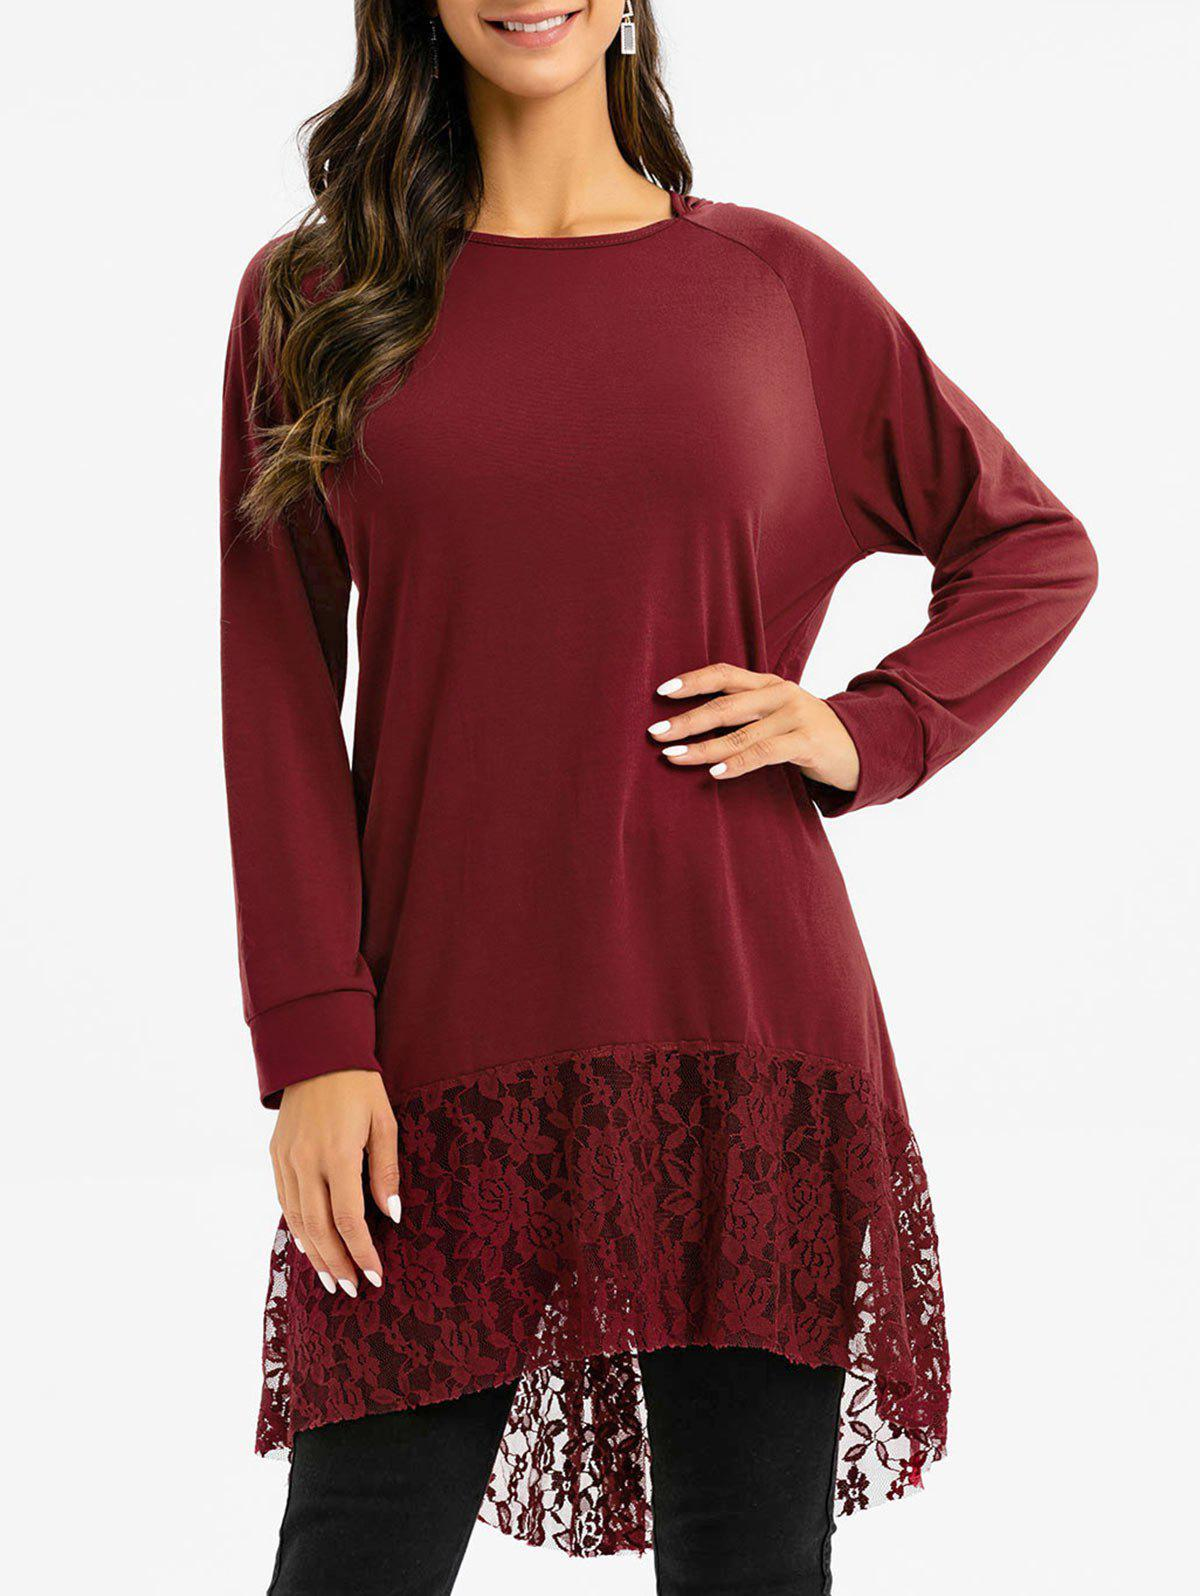 Floral Lace Panel High Low Hooded Top - RED WINE L